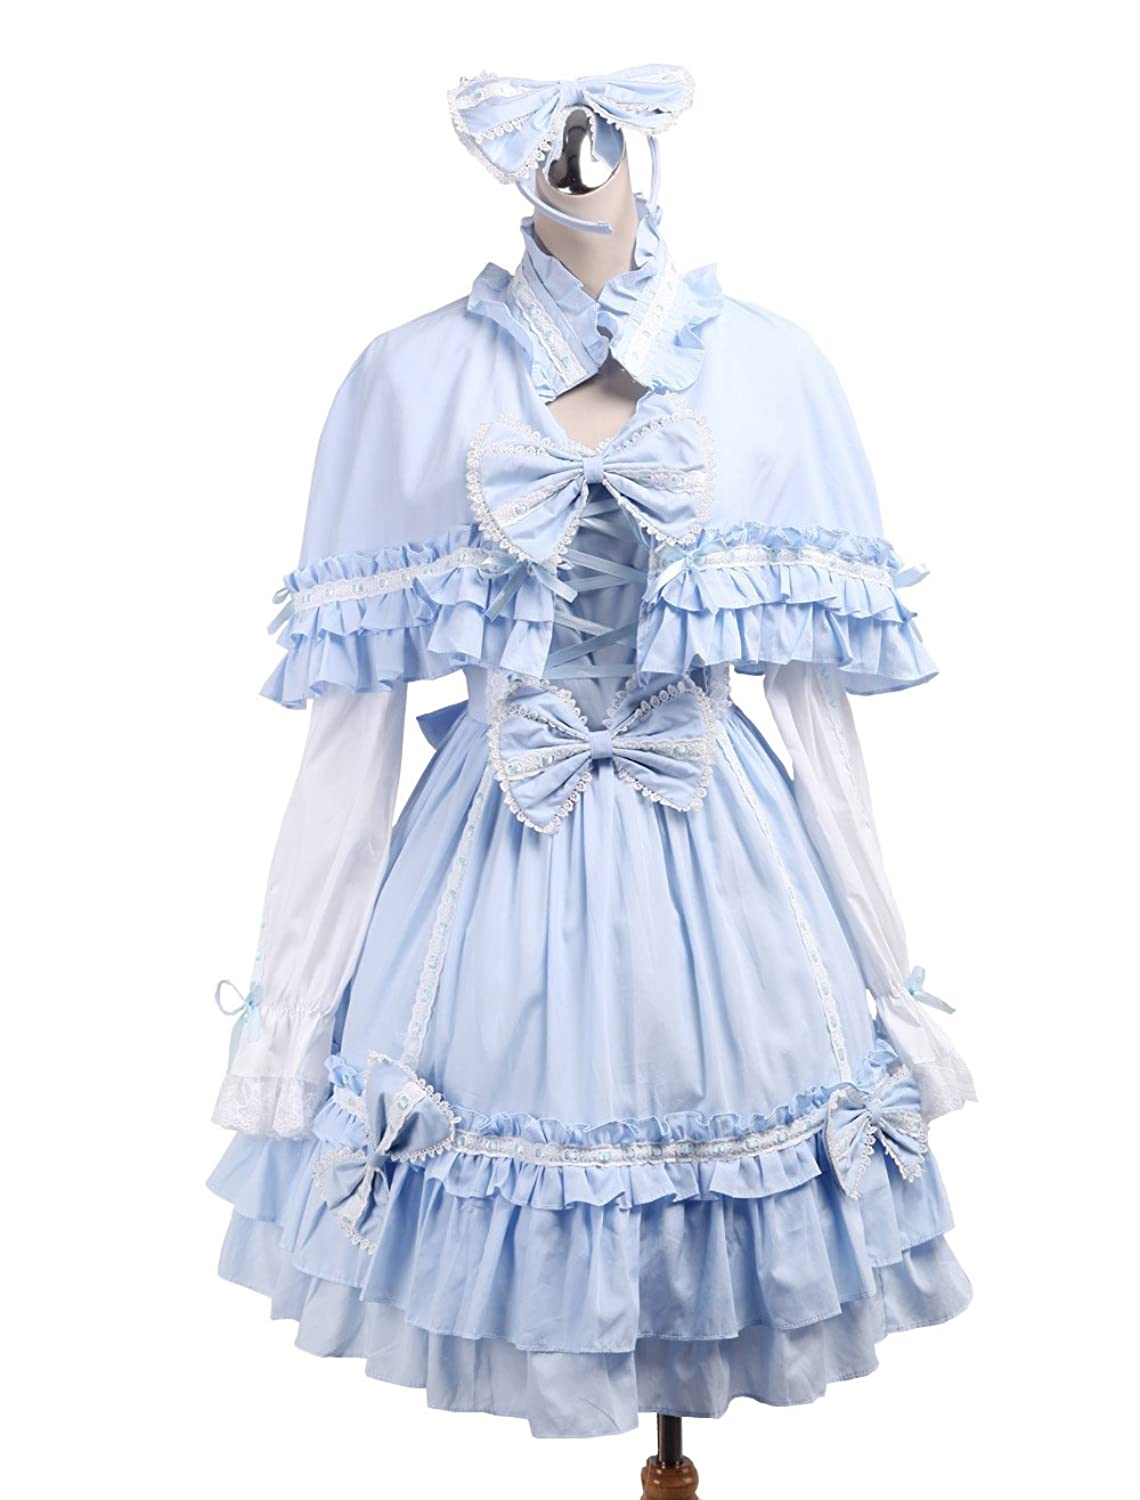 Vintage Style Children's Clothing: Girls, Boys, Baby, Toddler antaina Blue Cotton Bows Ruffle Sweet Victorian Lolita Dress With Cape Headware $68.99 AT vintagedancer.com